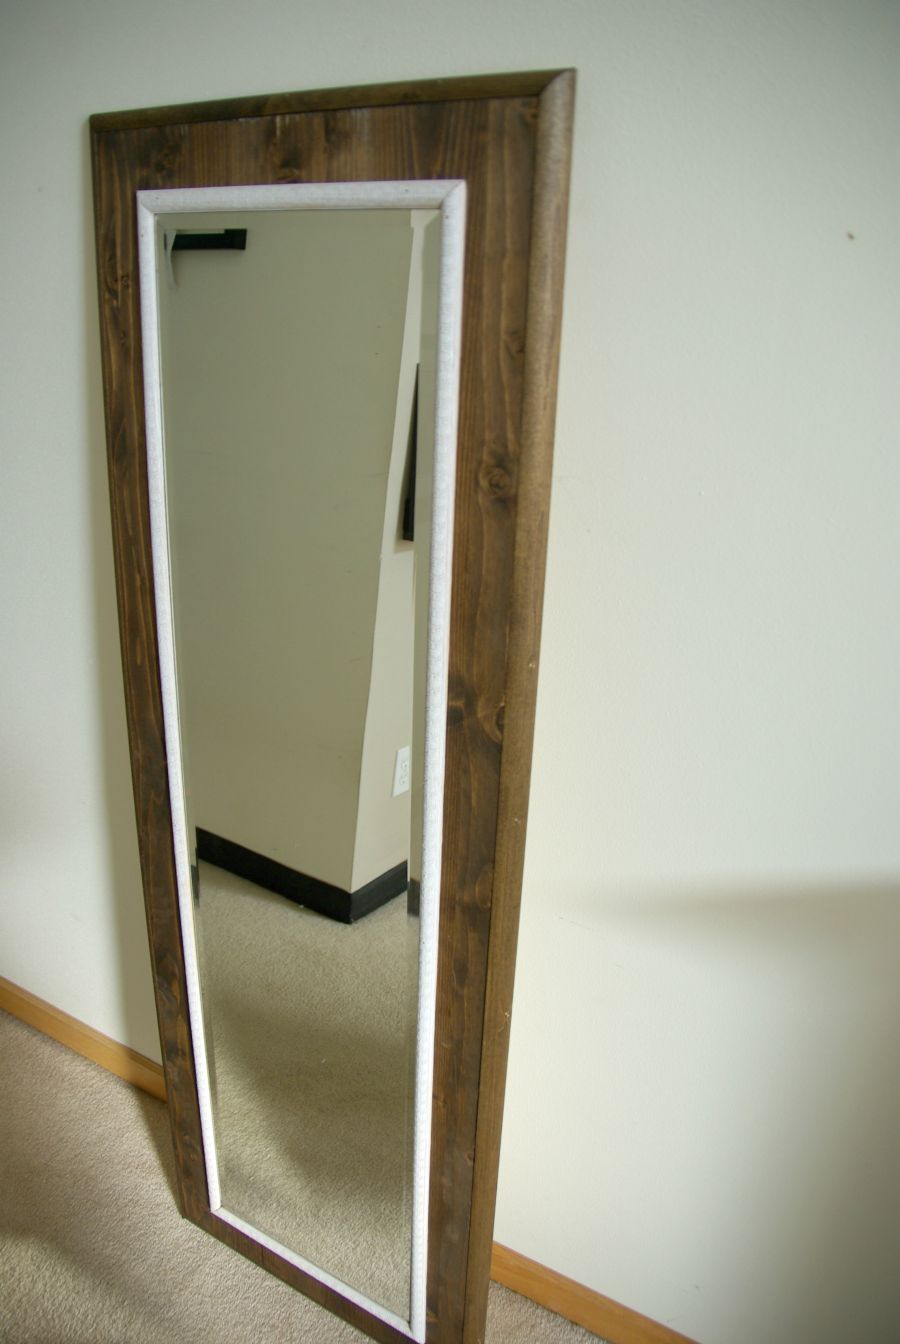 Diy floor mirror frame amipublicfo Choice Image